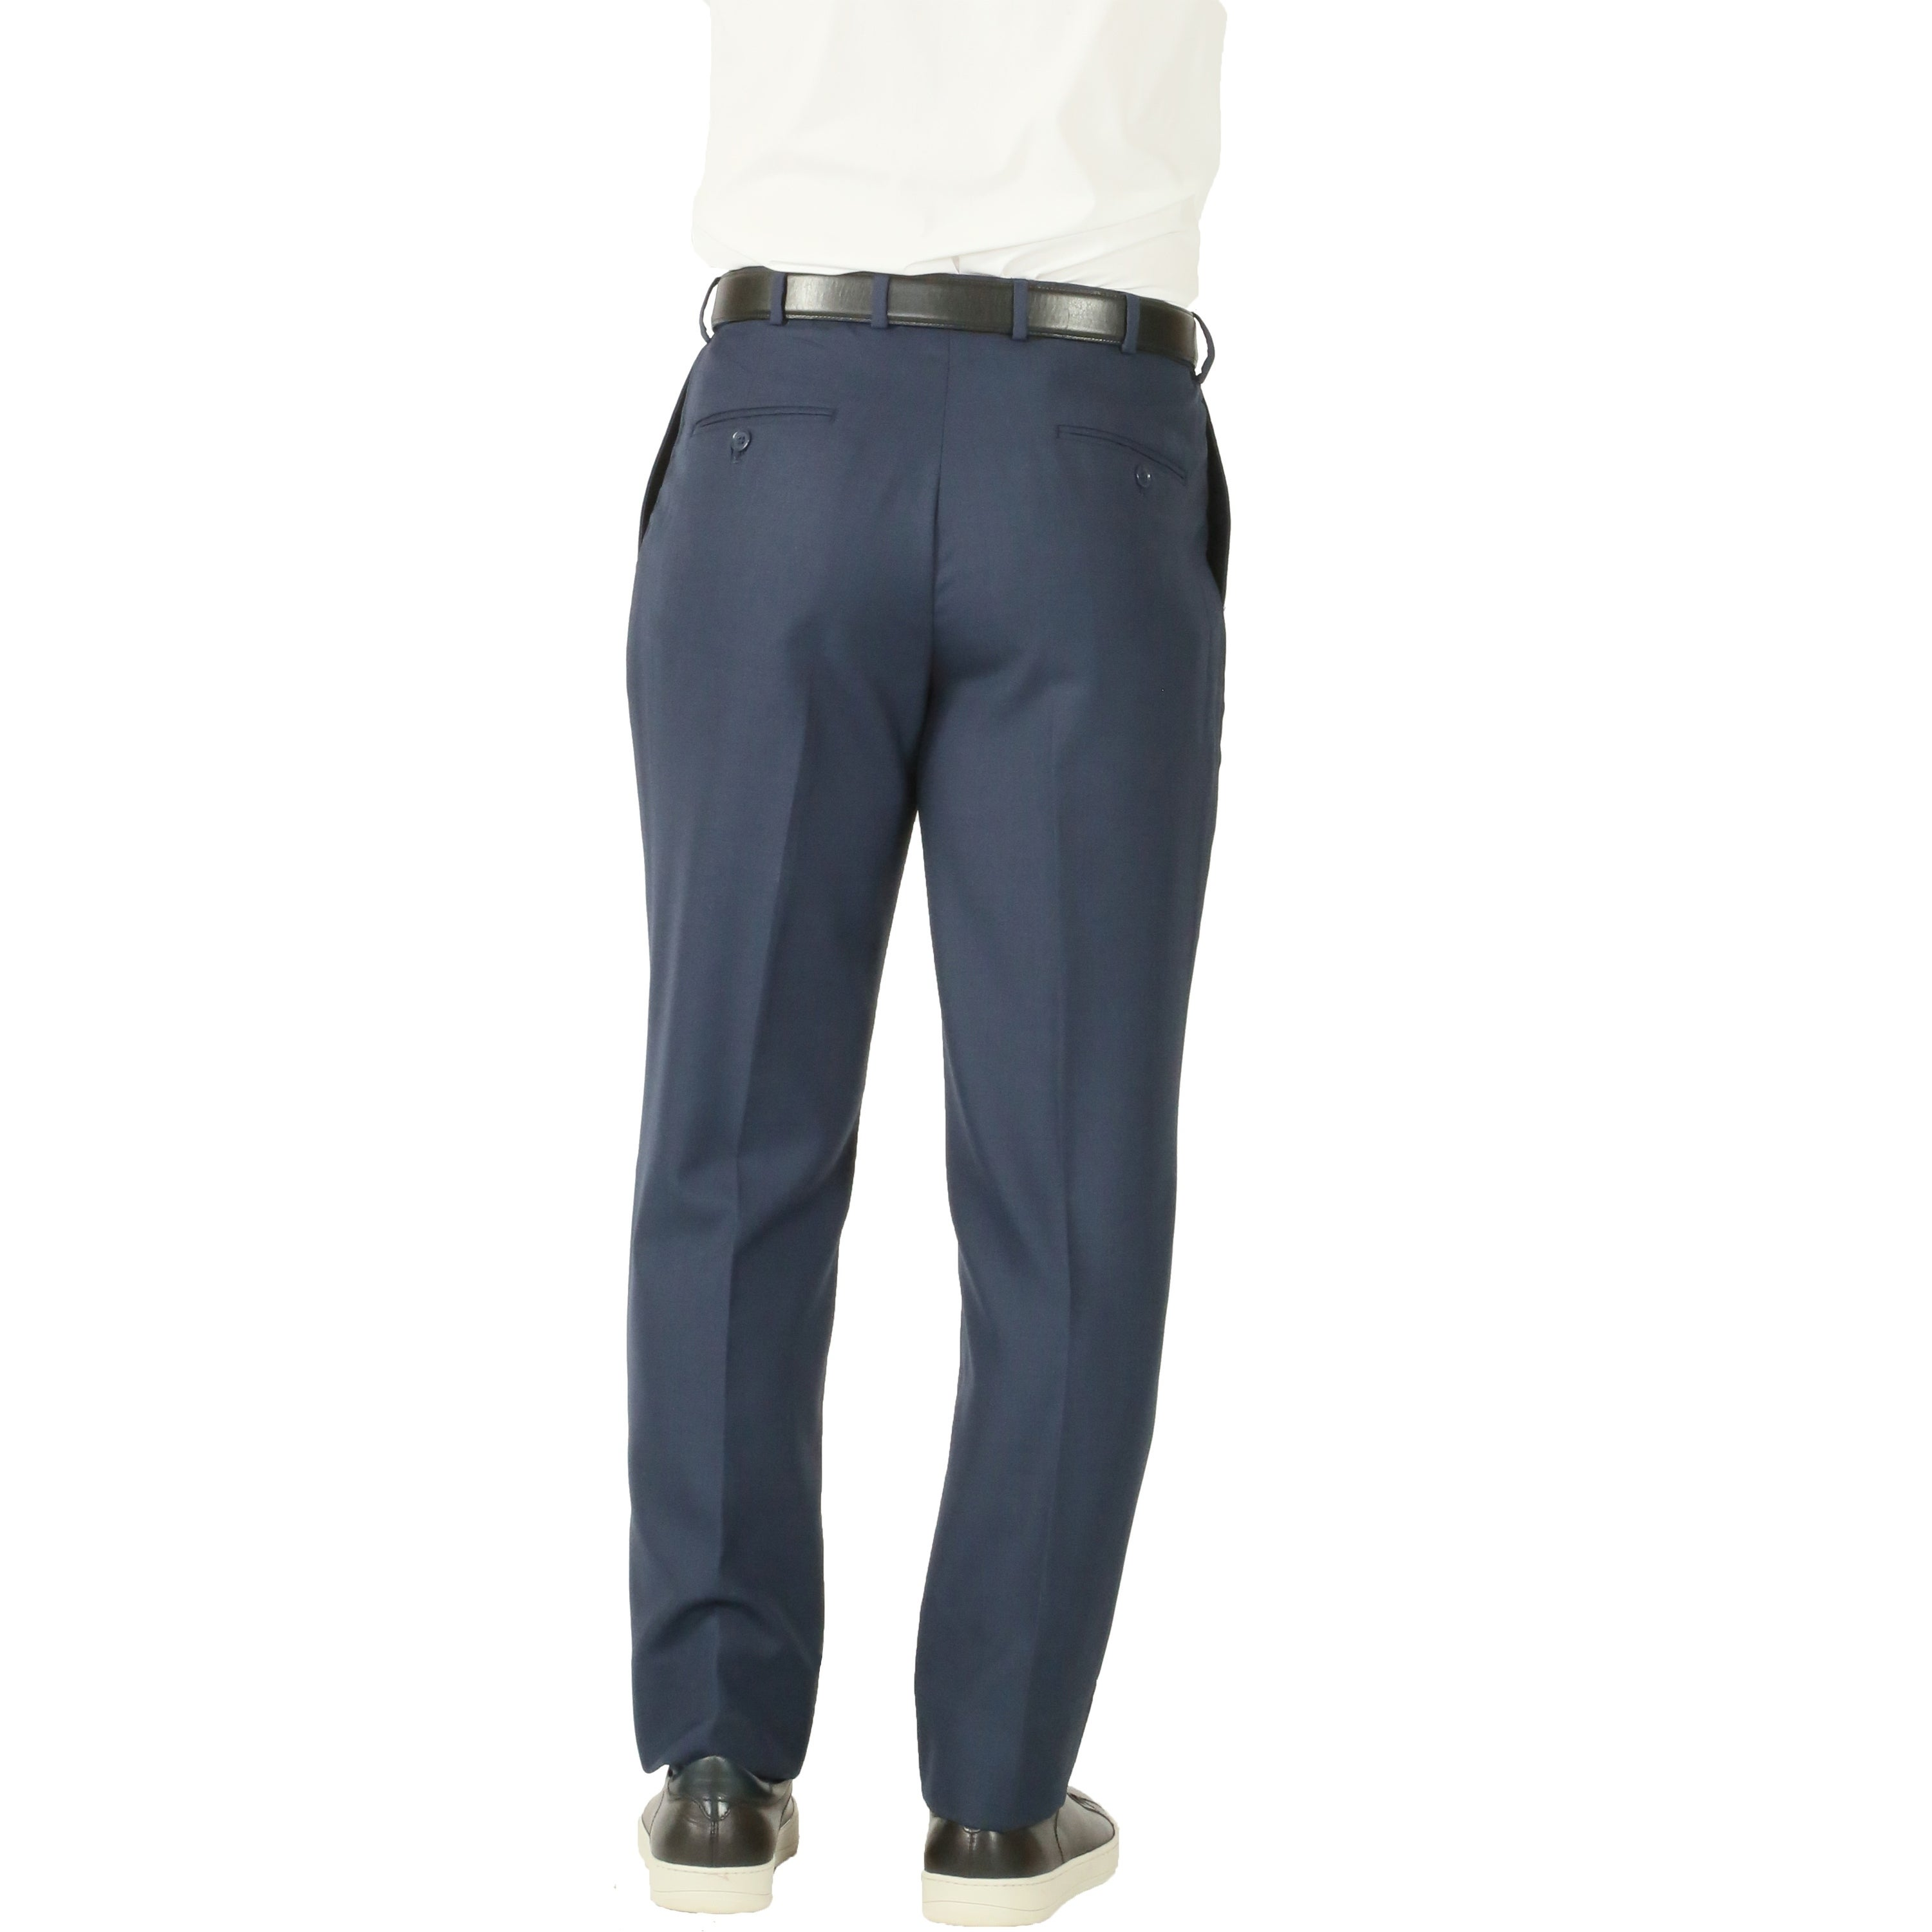 Wool Mens dress pants pictures rare photo